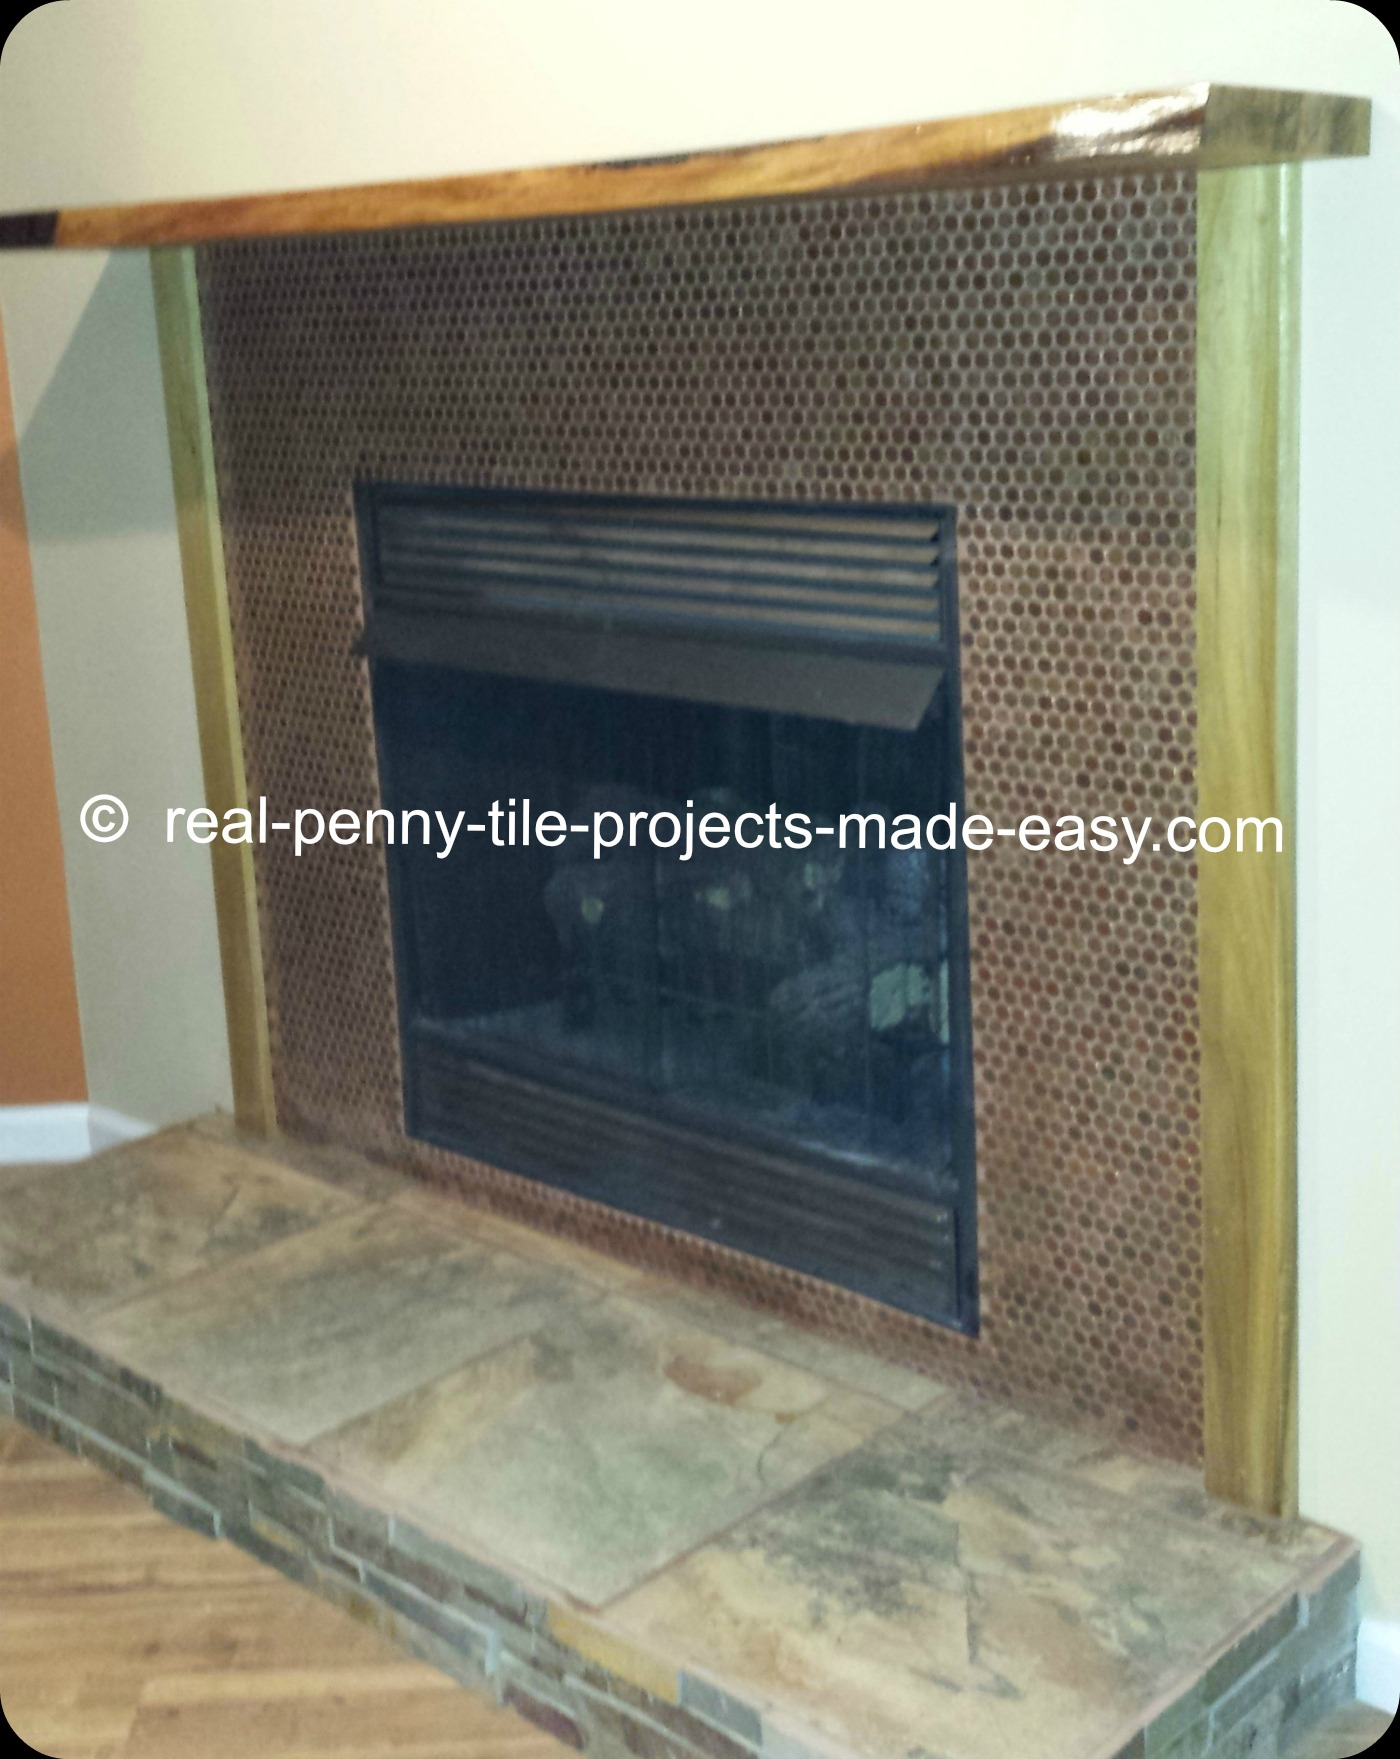 Real penny tile sheets installed on fireplace.